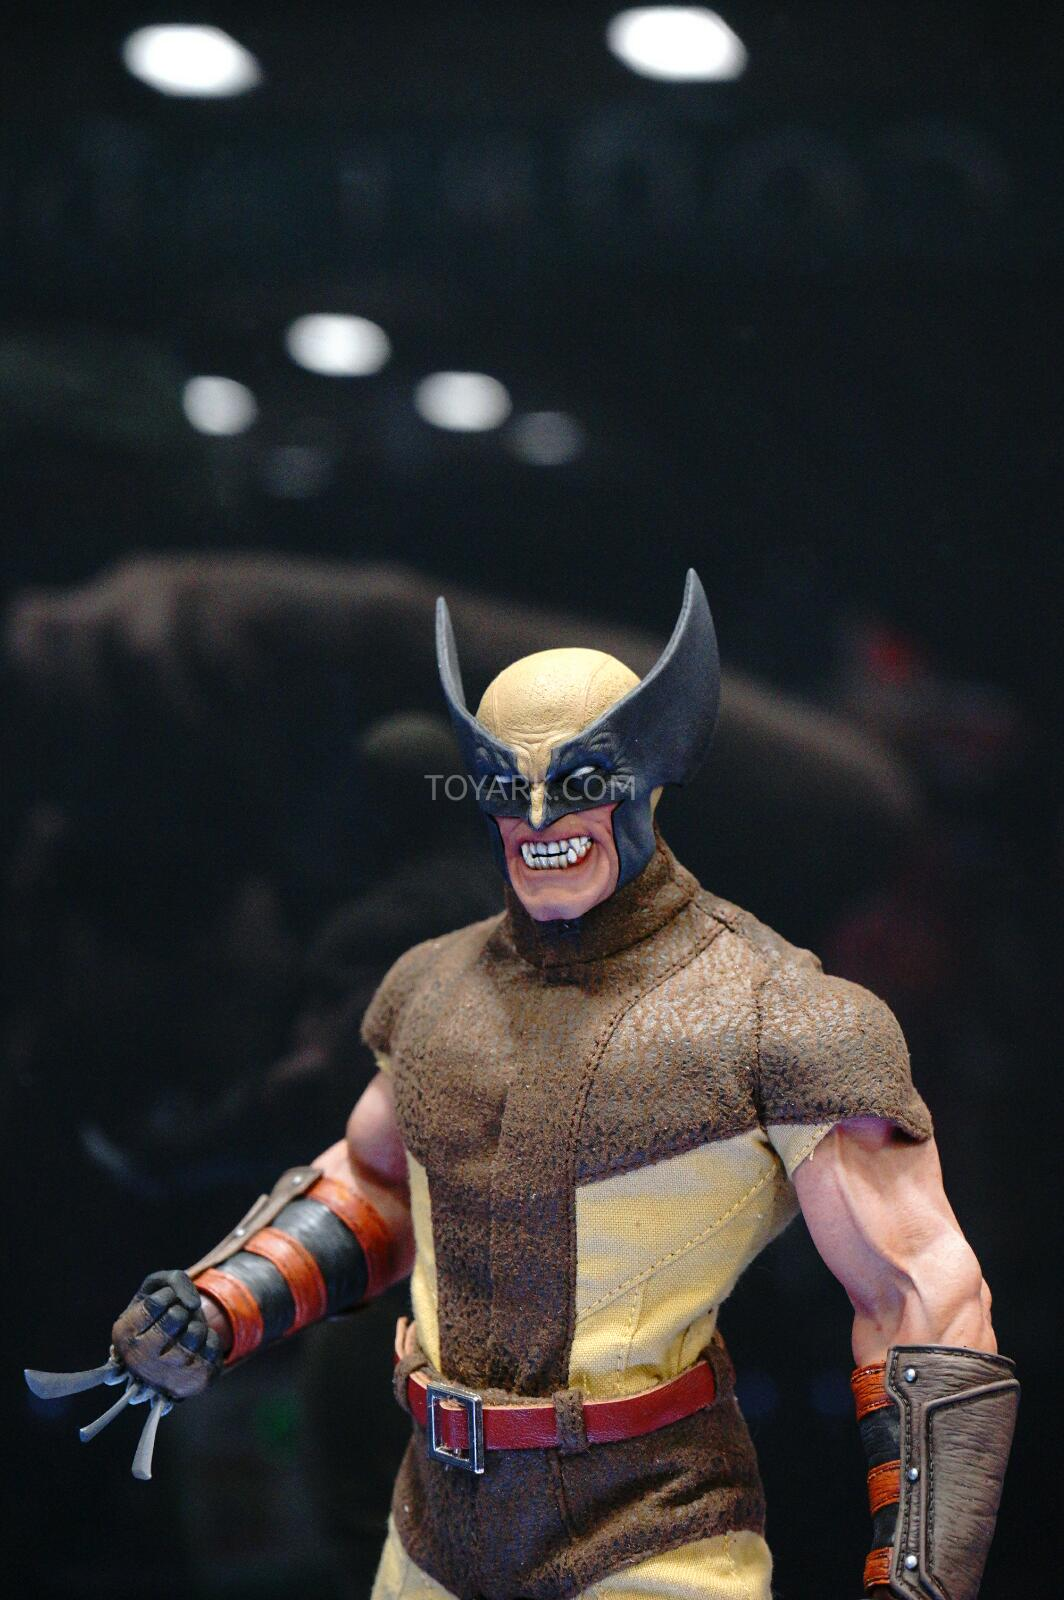 [Sideshow] Marvel Sixth Scale Collection - Wolverine DSC07550